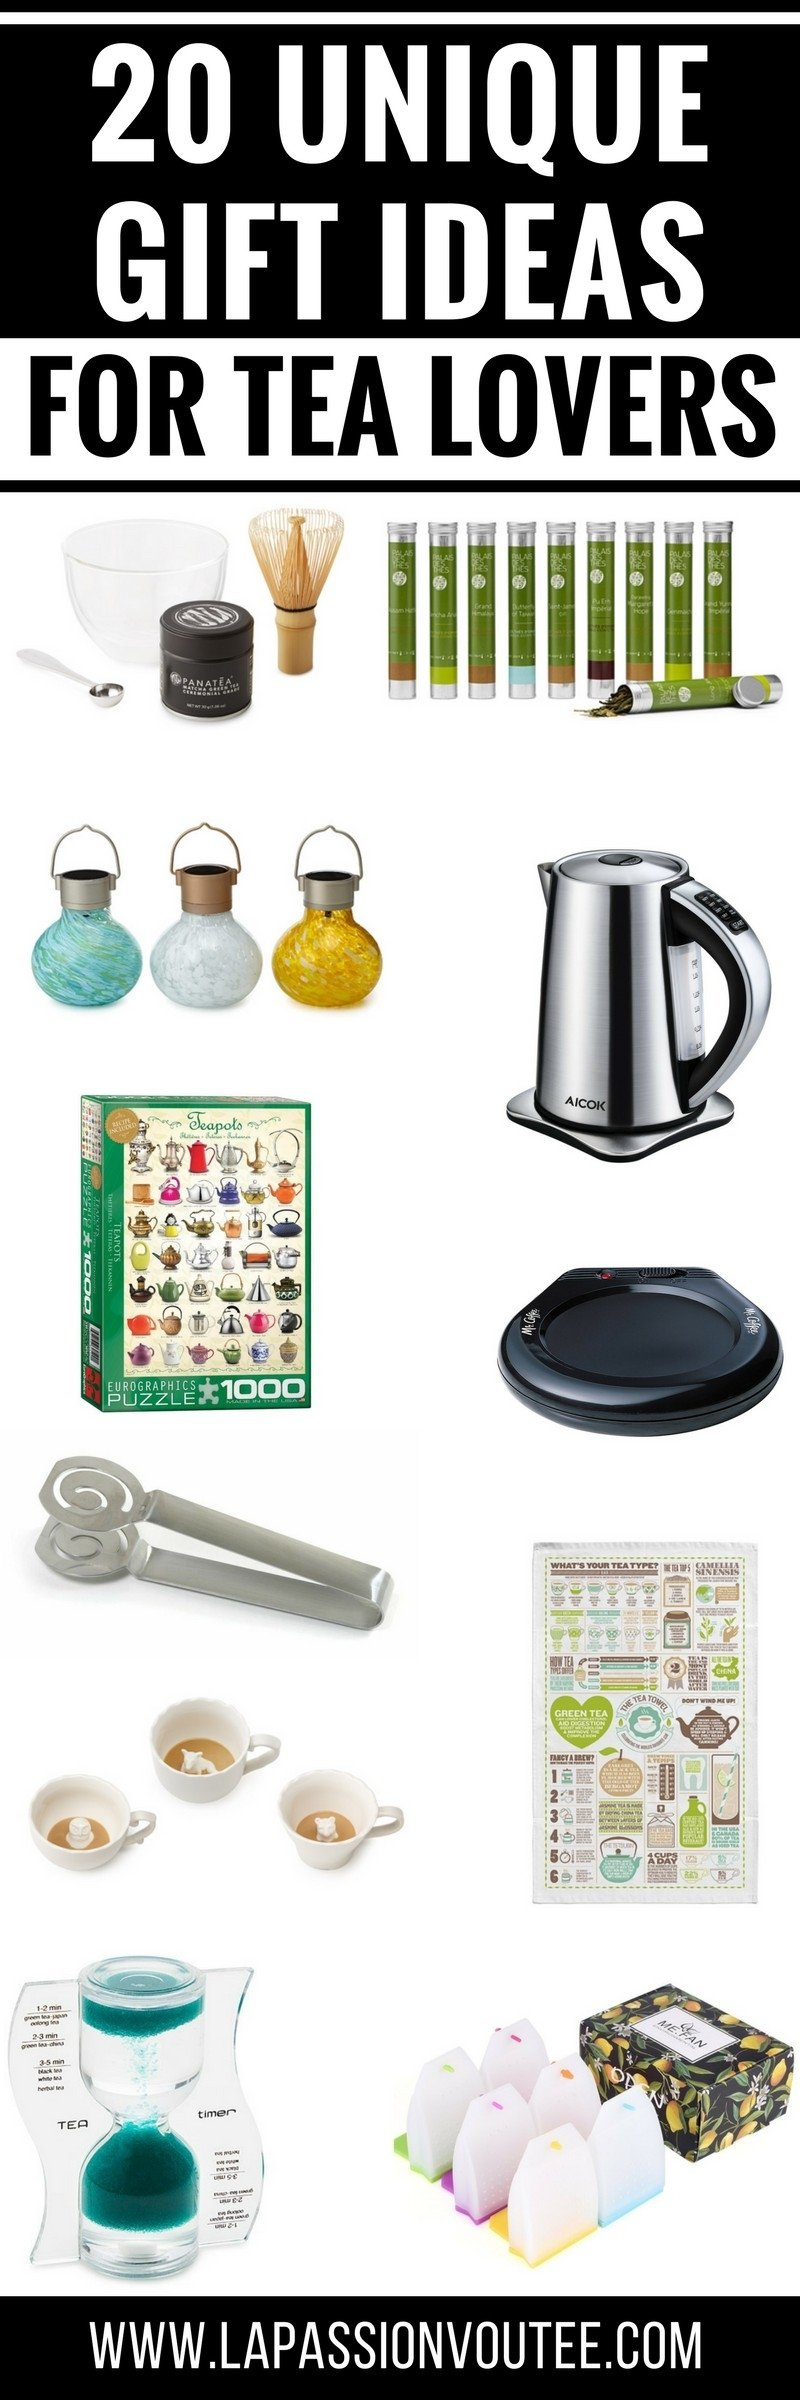 10 Ideal Gift Ideas For Tea Lovers 20 perfect gift ideas for tea lovers tea lovers gift guide 2020